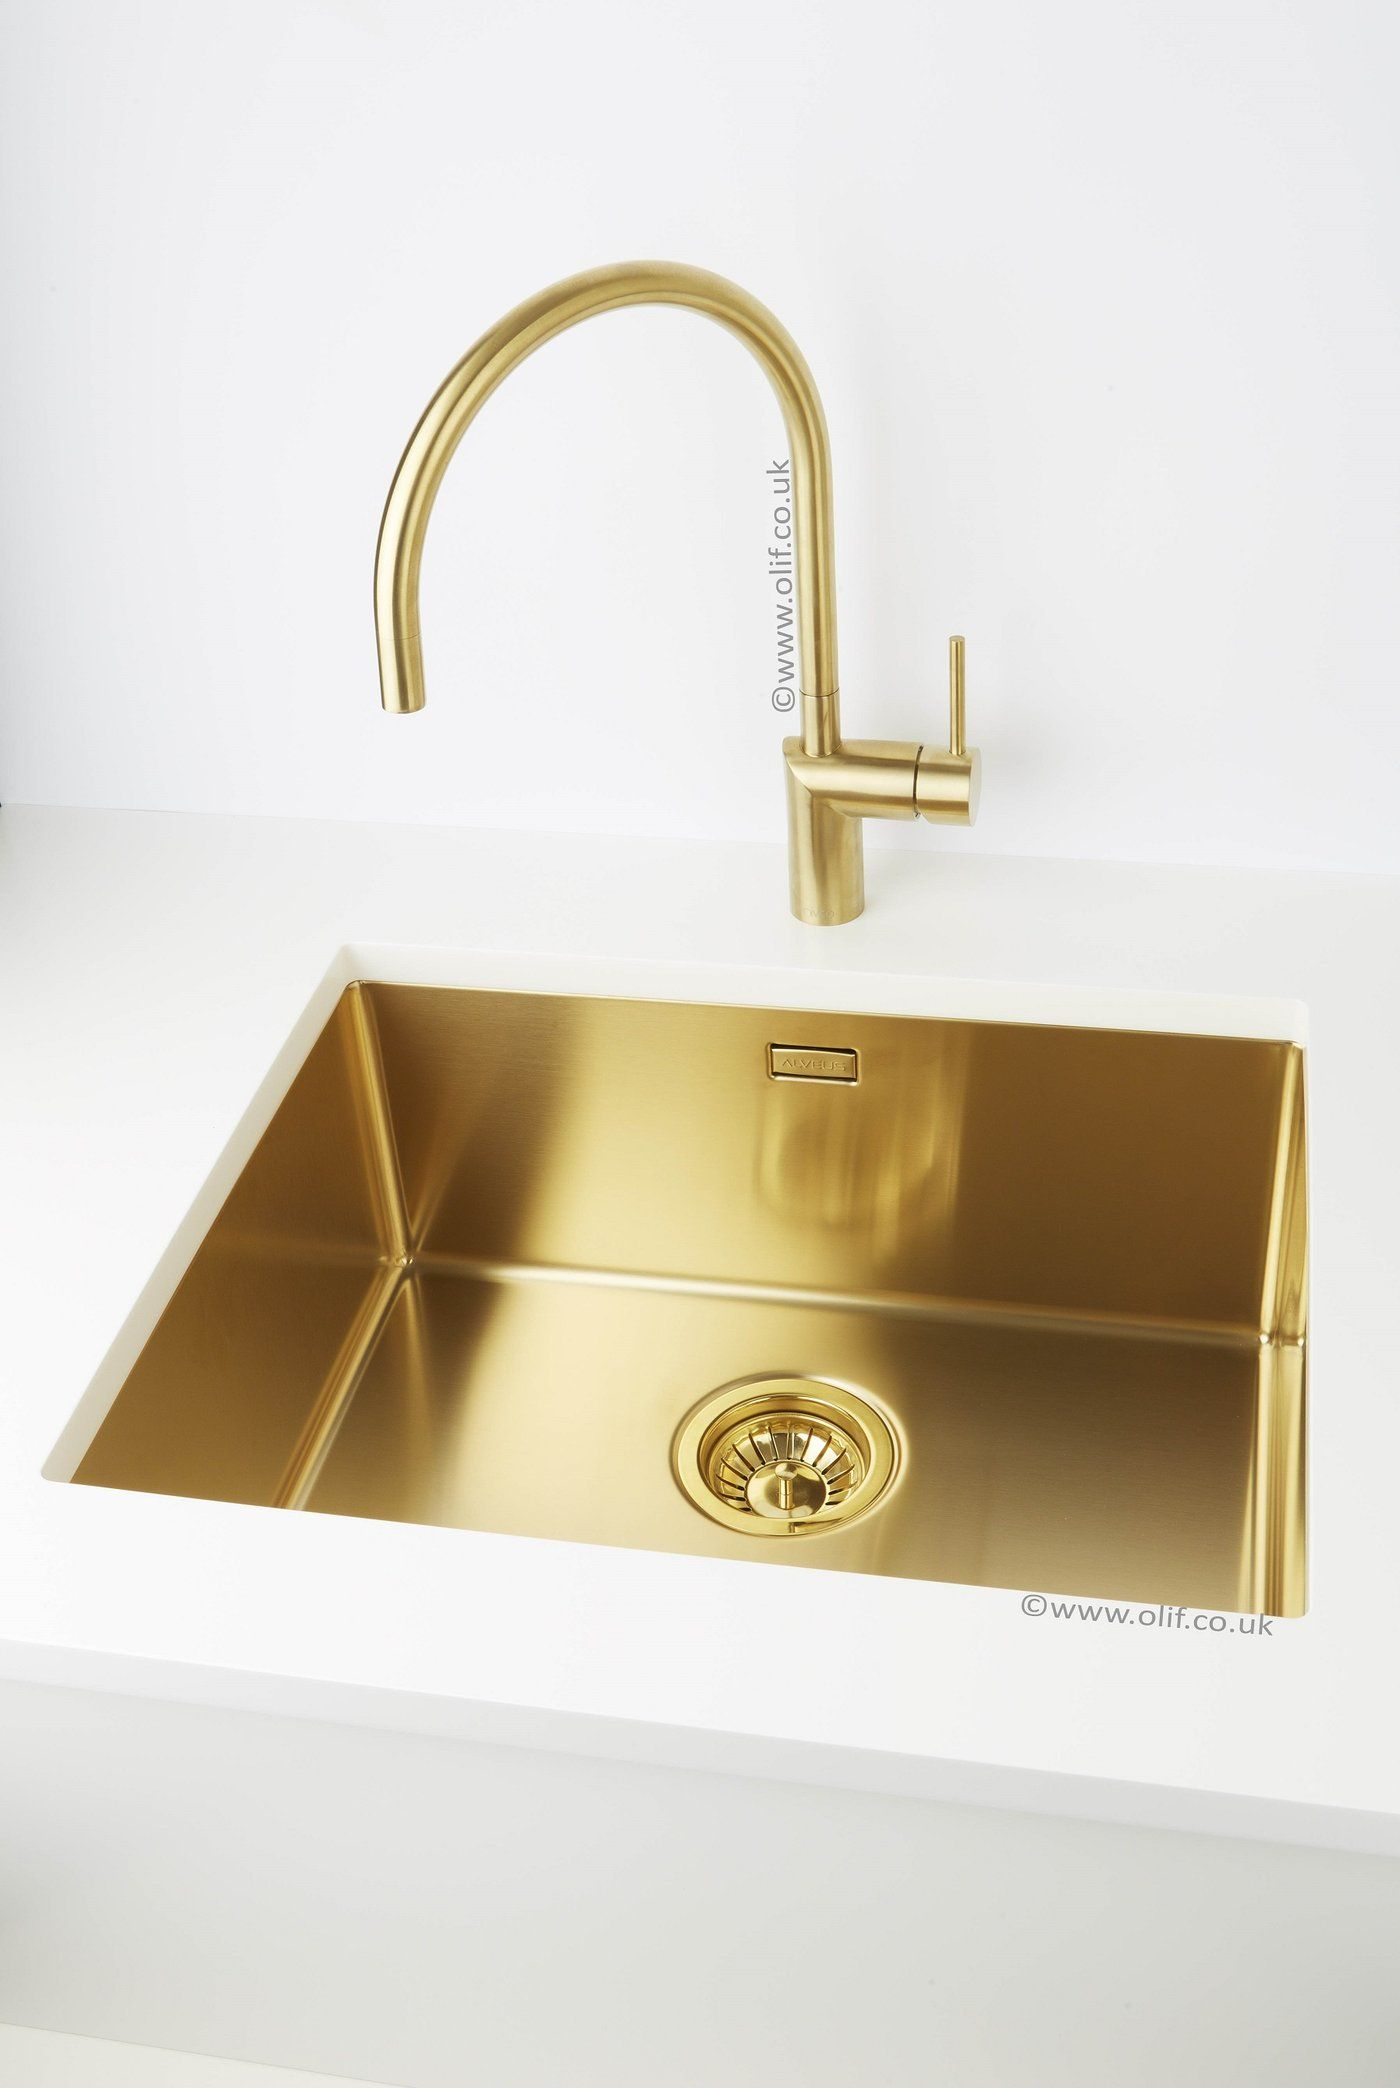 Best Kitchen Taps Nivito Rh 140 Brushed Brass Gold Kitchen Mixer Tap In 2019